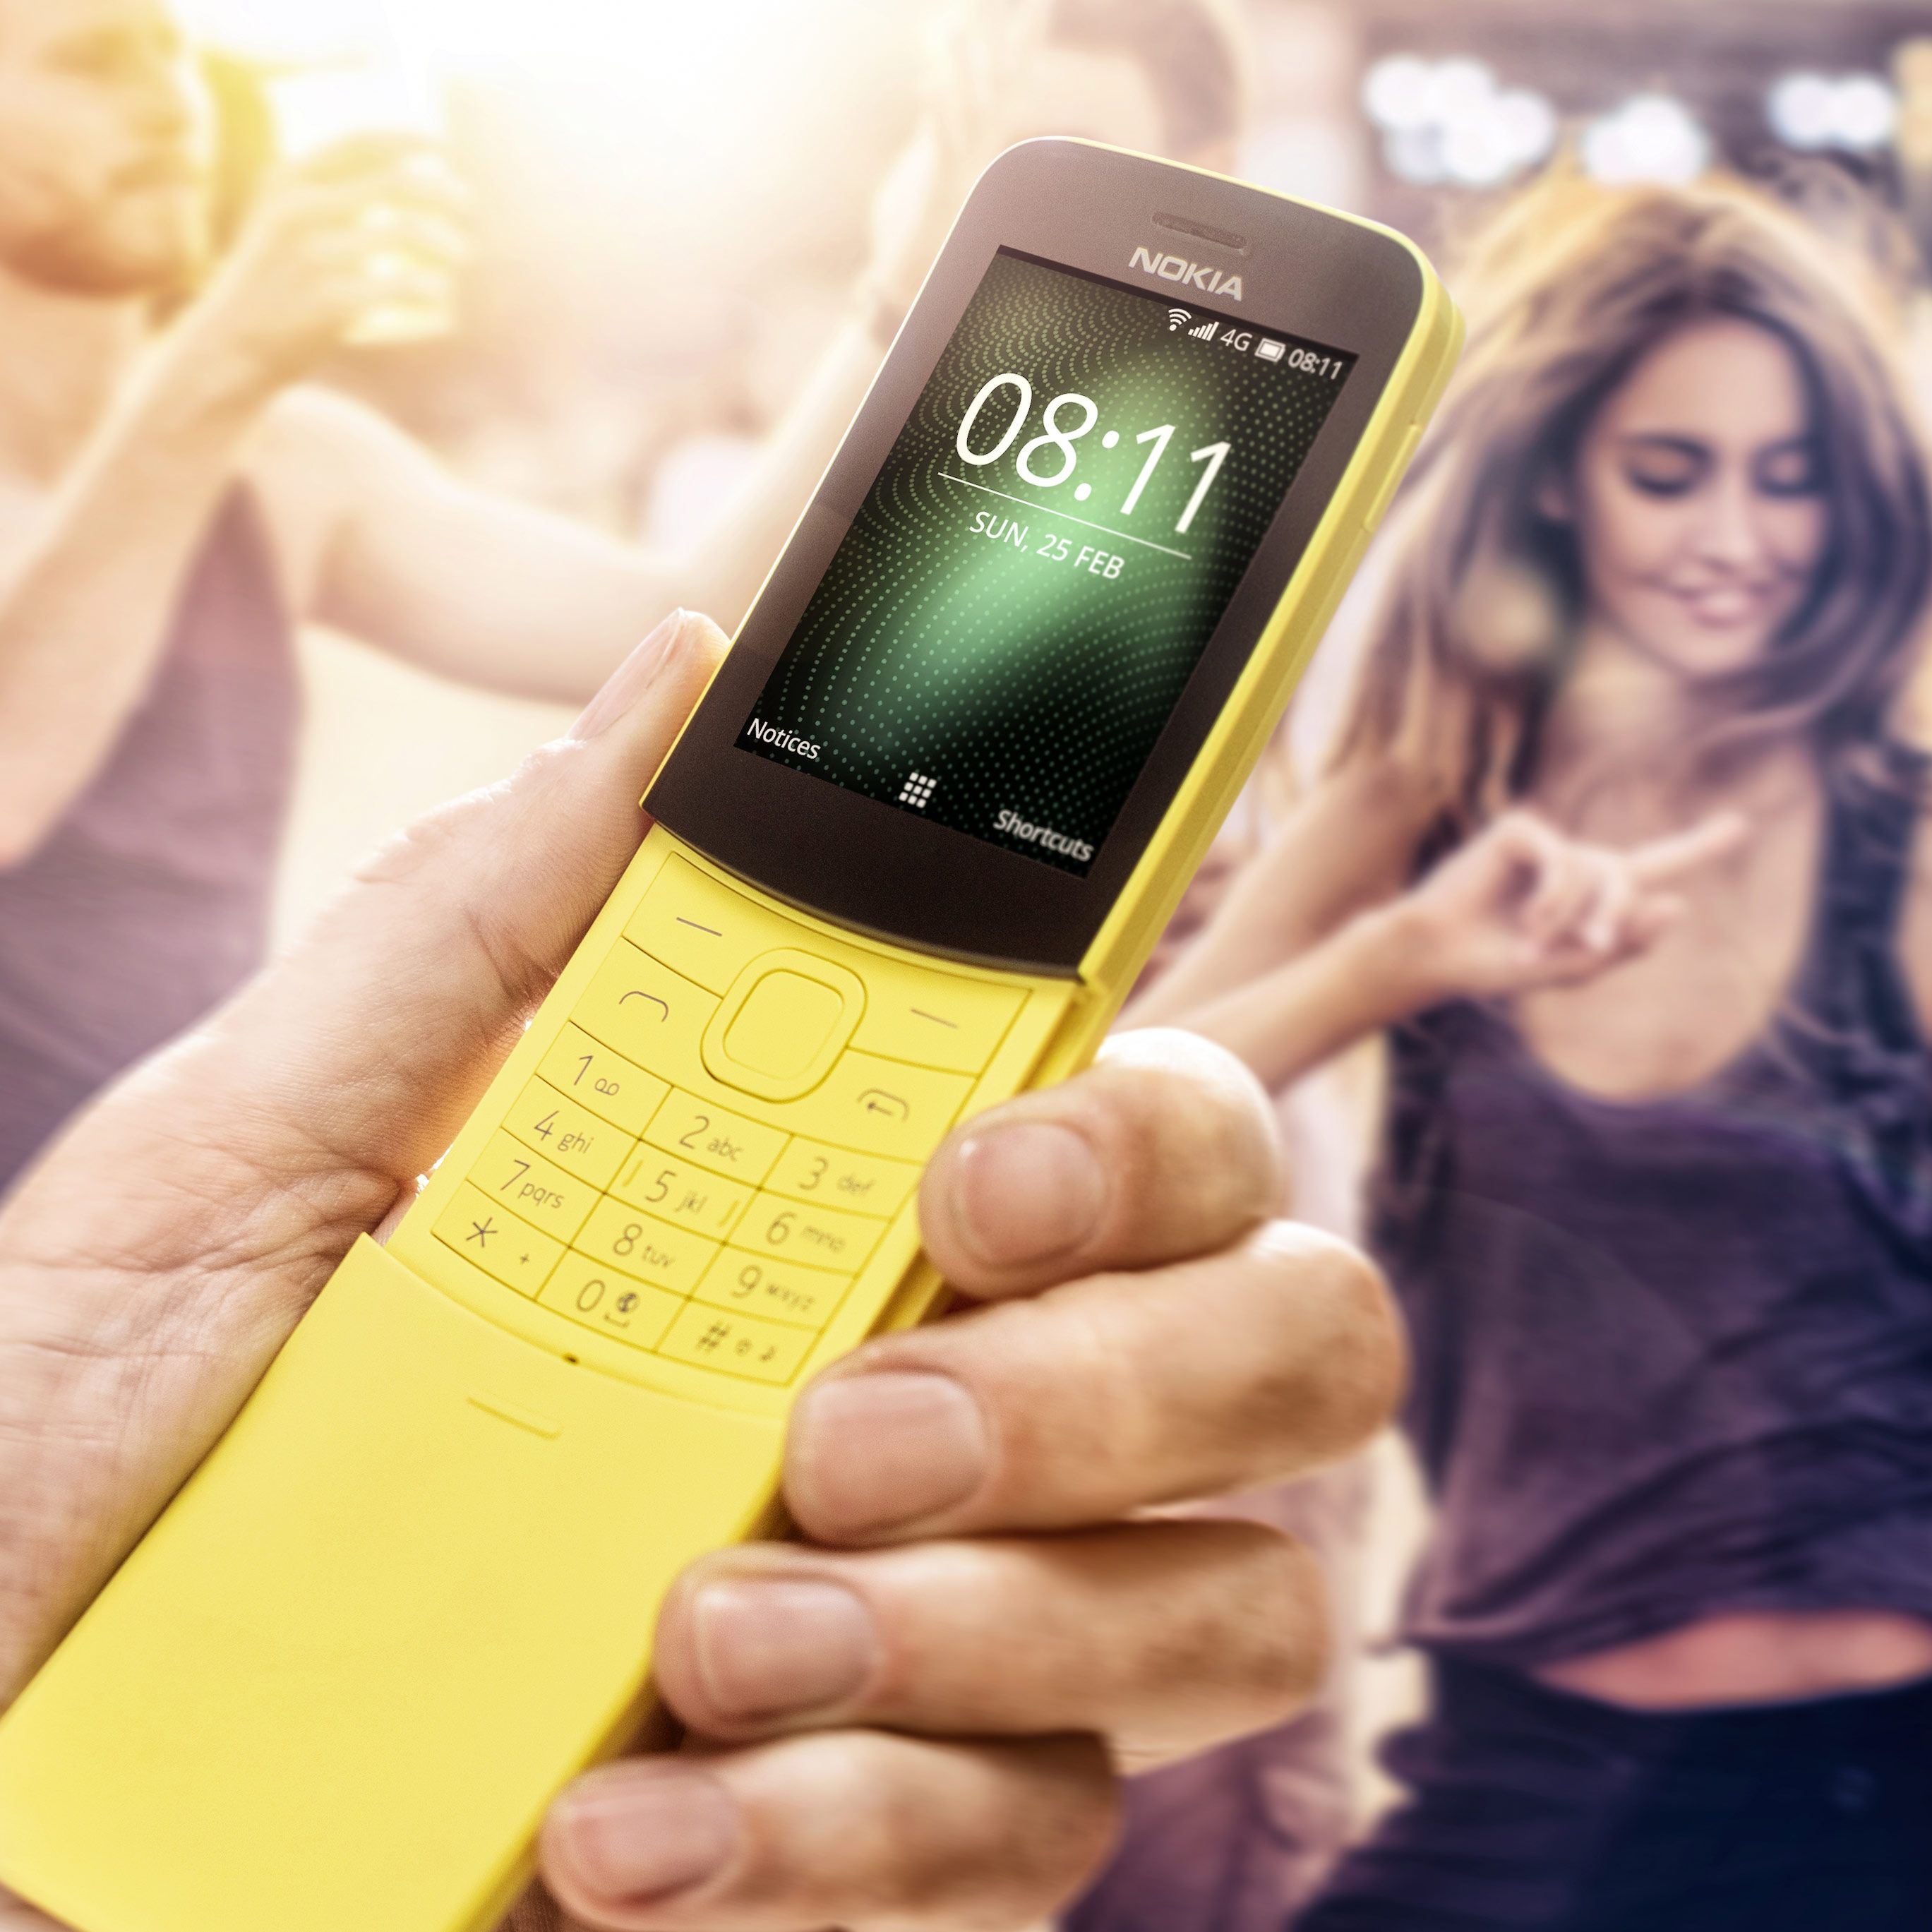 Could the Nokia 8110 make you ditch your smartphone? - Nokia 8110 Review